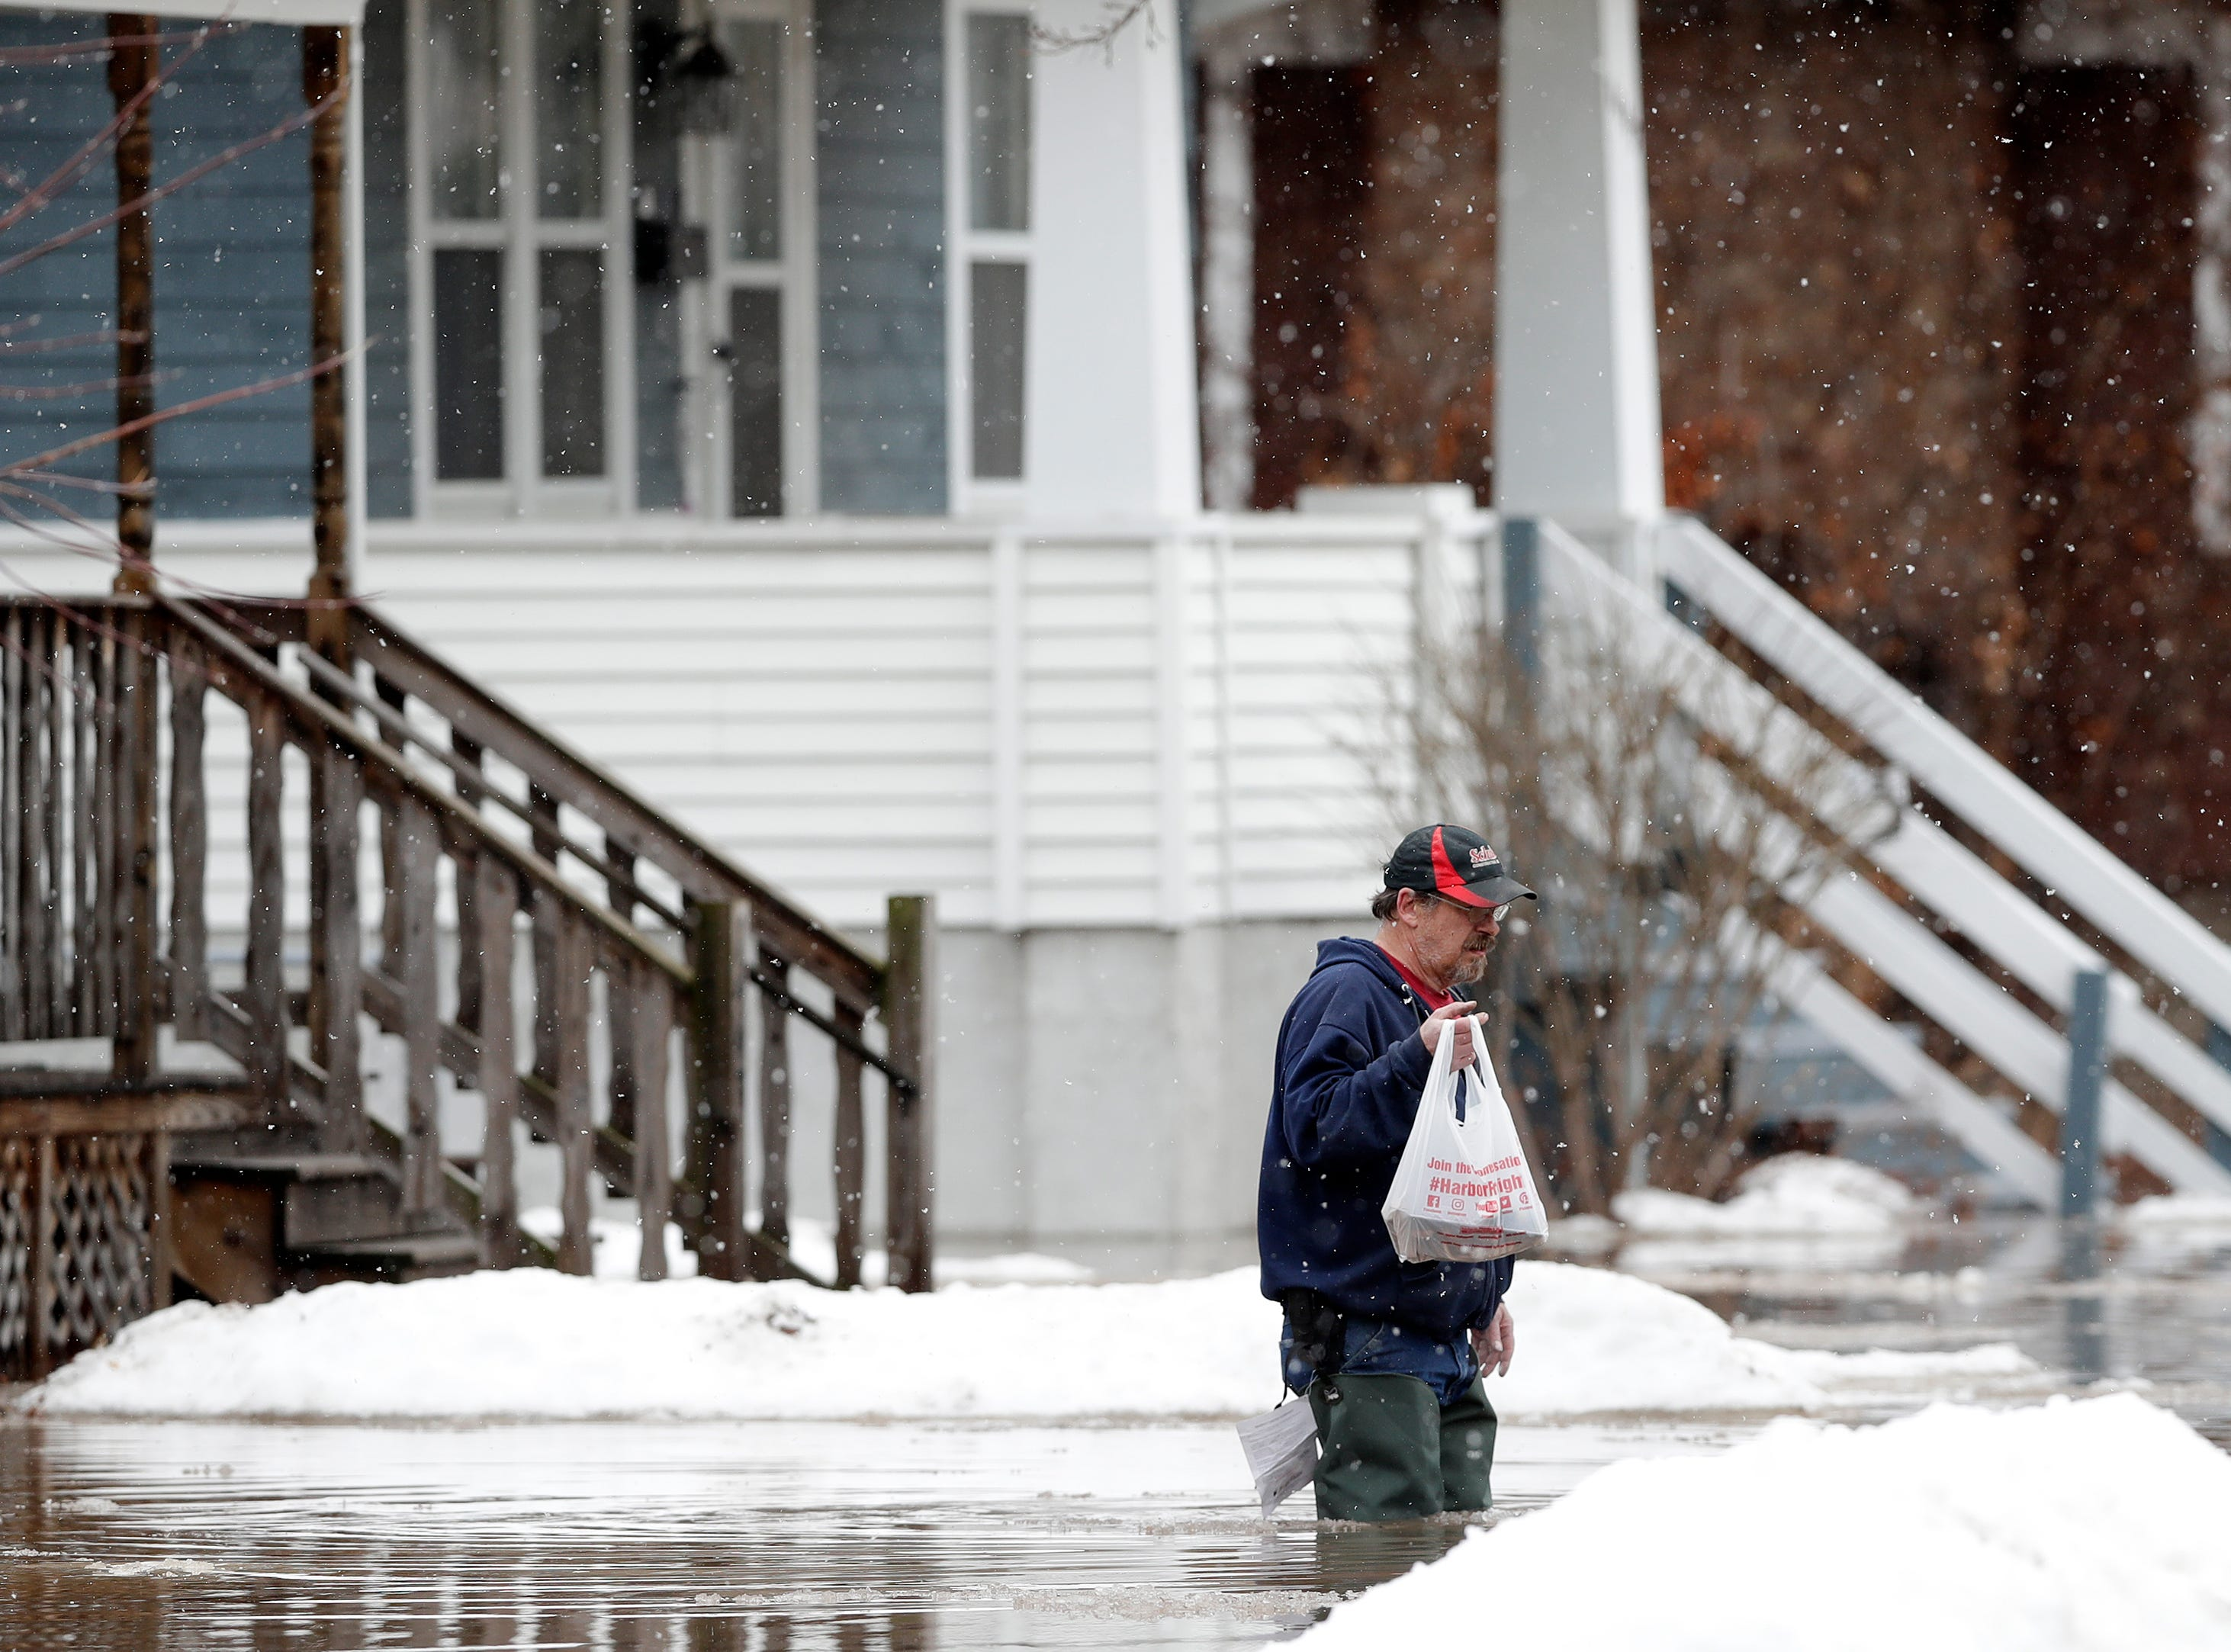 Residents evacuate their homes due to East river floodwaters on Friday, March 15, 2019 in Green Bay, Wis.